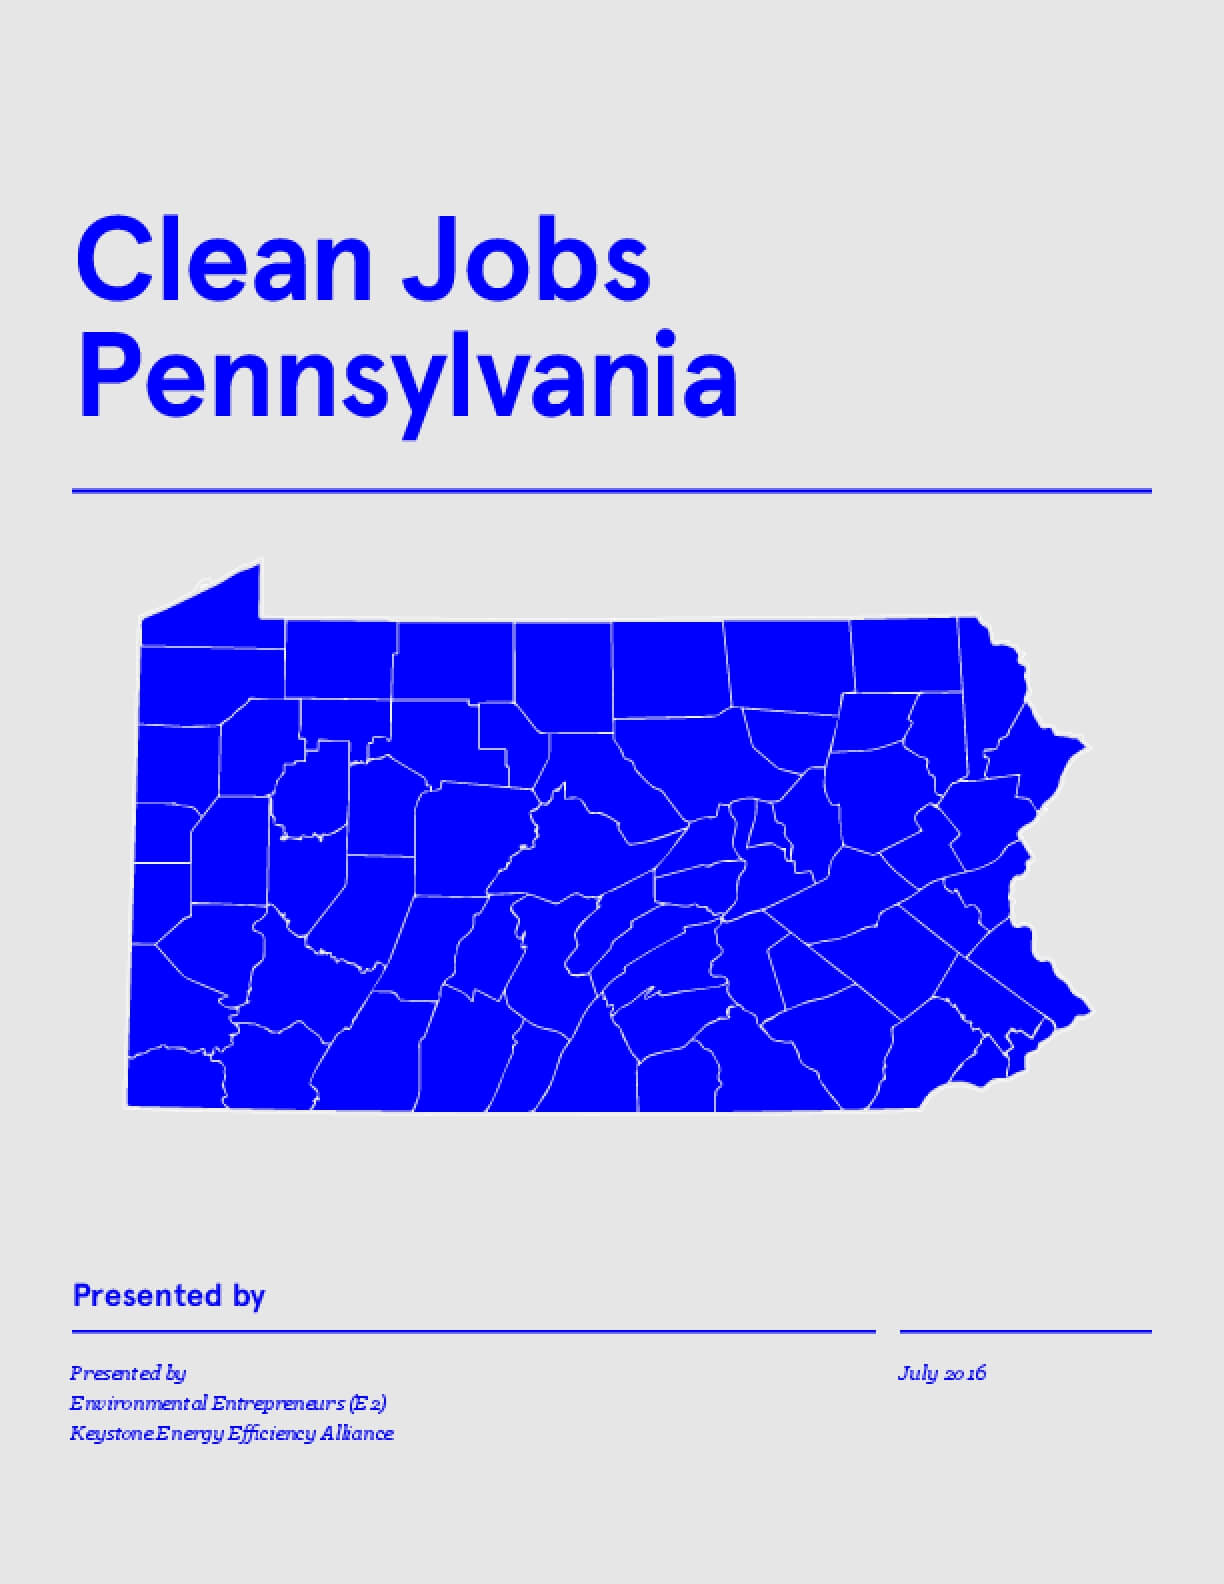 Clean Jobs Pennsylvania